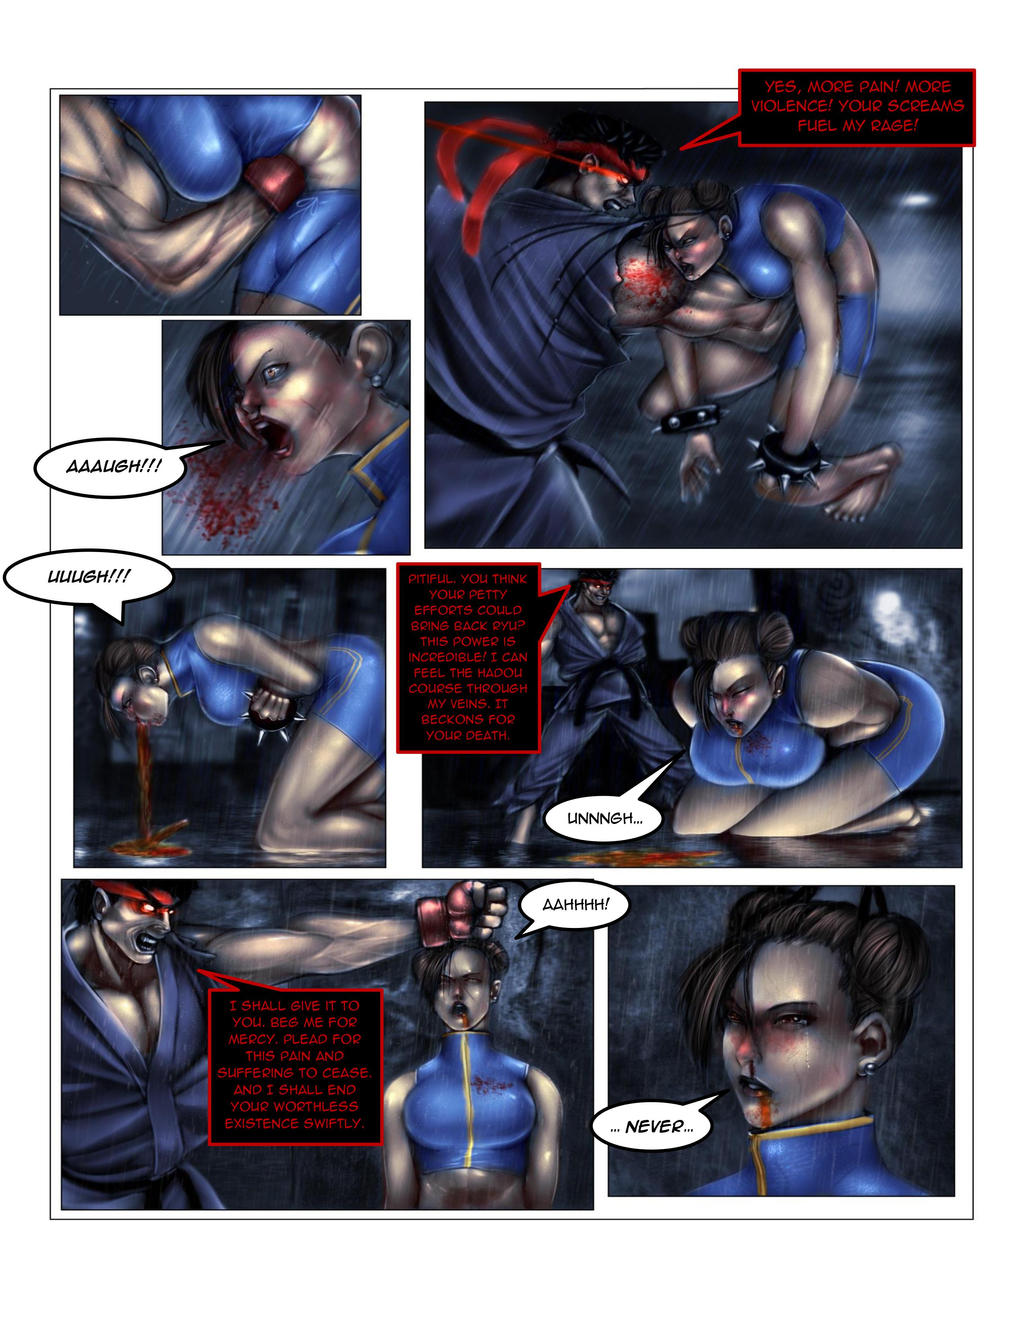 evil_ryu_vs_chun_li_pg_3_by_tree_ink-d9ulwm0.jpg